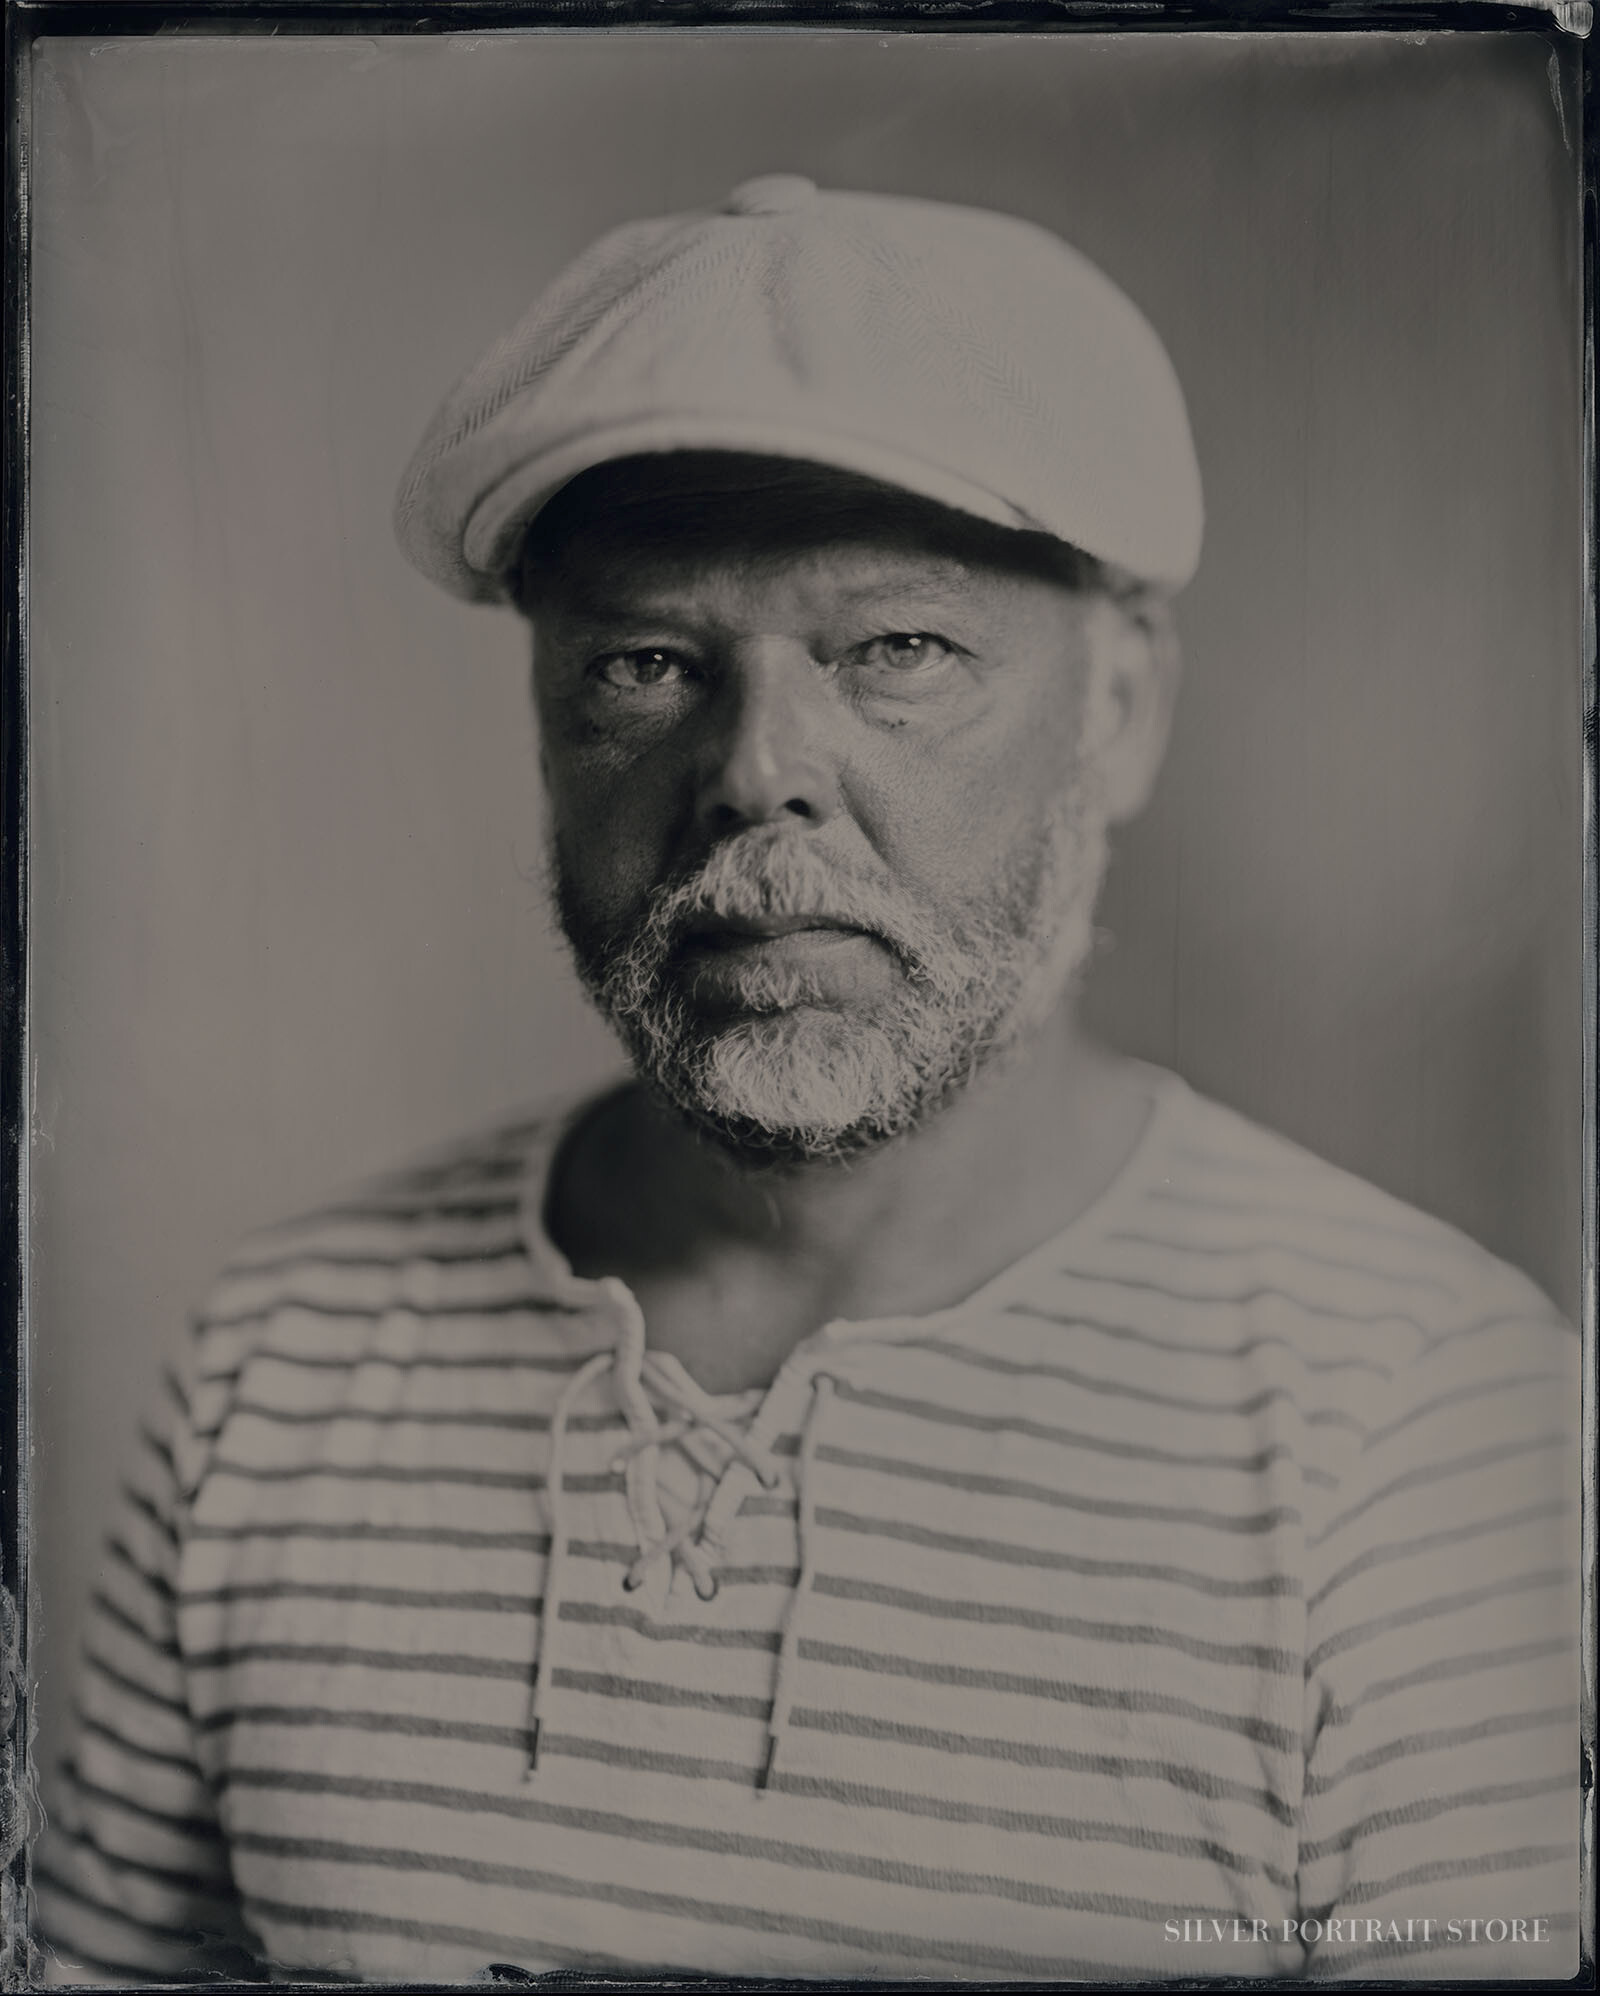 Willem Gast-Silver Portrait Store-Scan from Wet plate collodion-Tintype 20 x 25 cm.